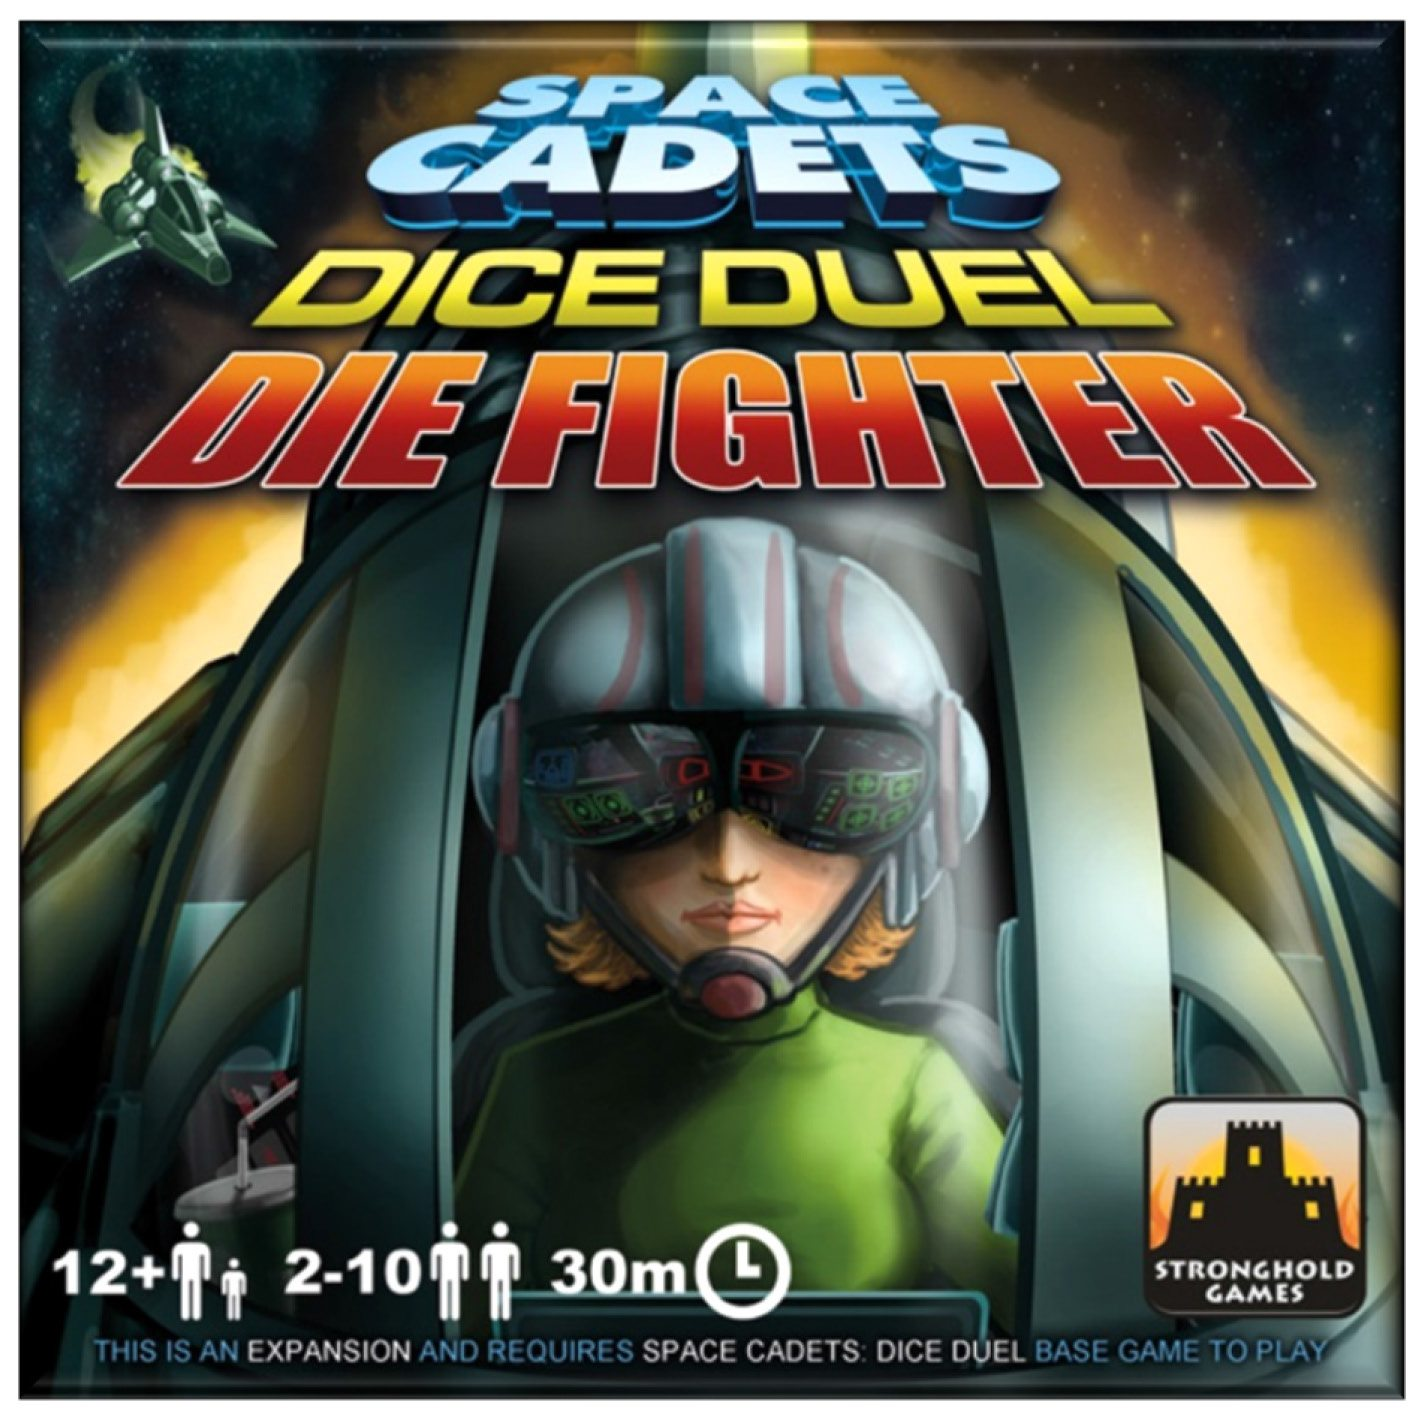 Space Cadets: Dice Duel - Die Fighter